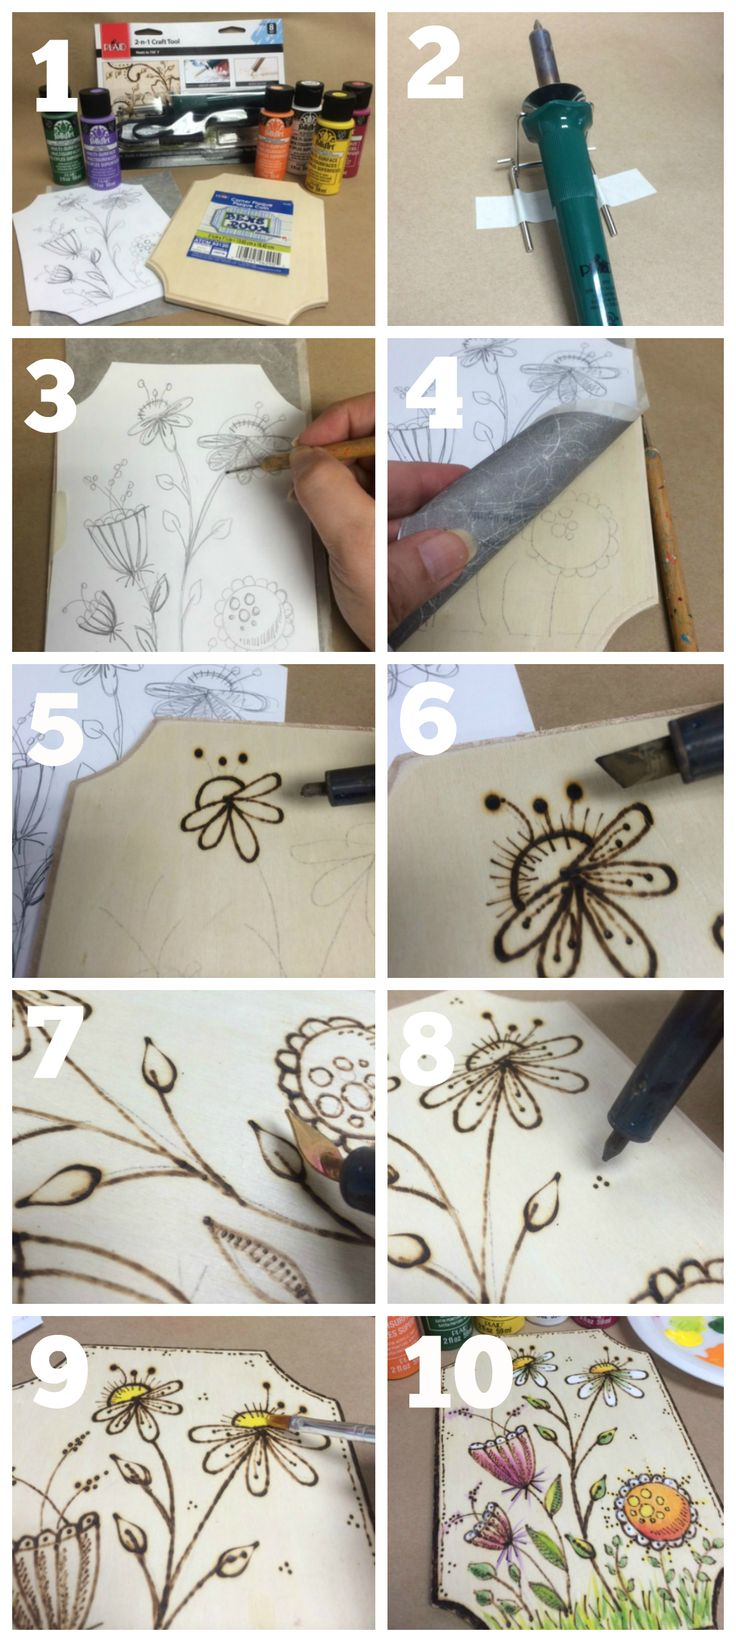 DIY Wood Burning: How To Tips & Project Patterns